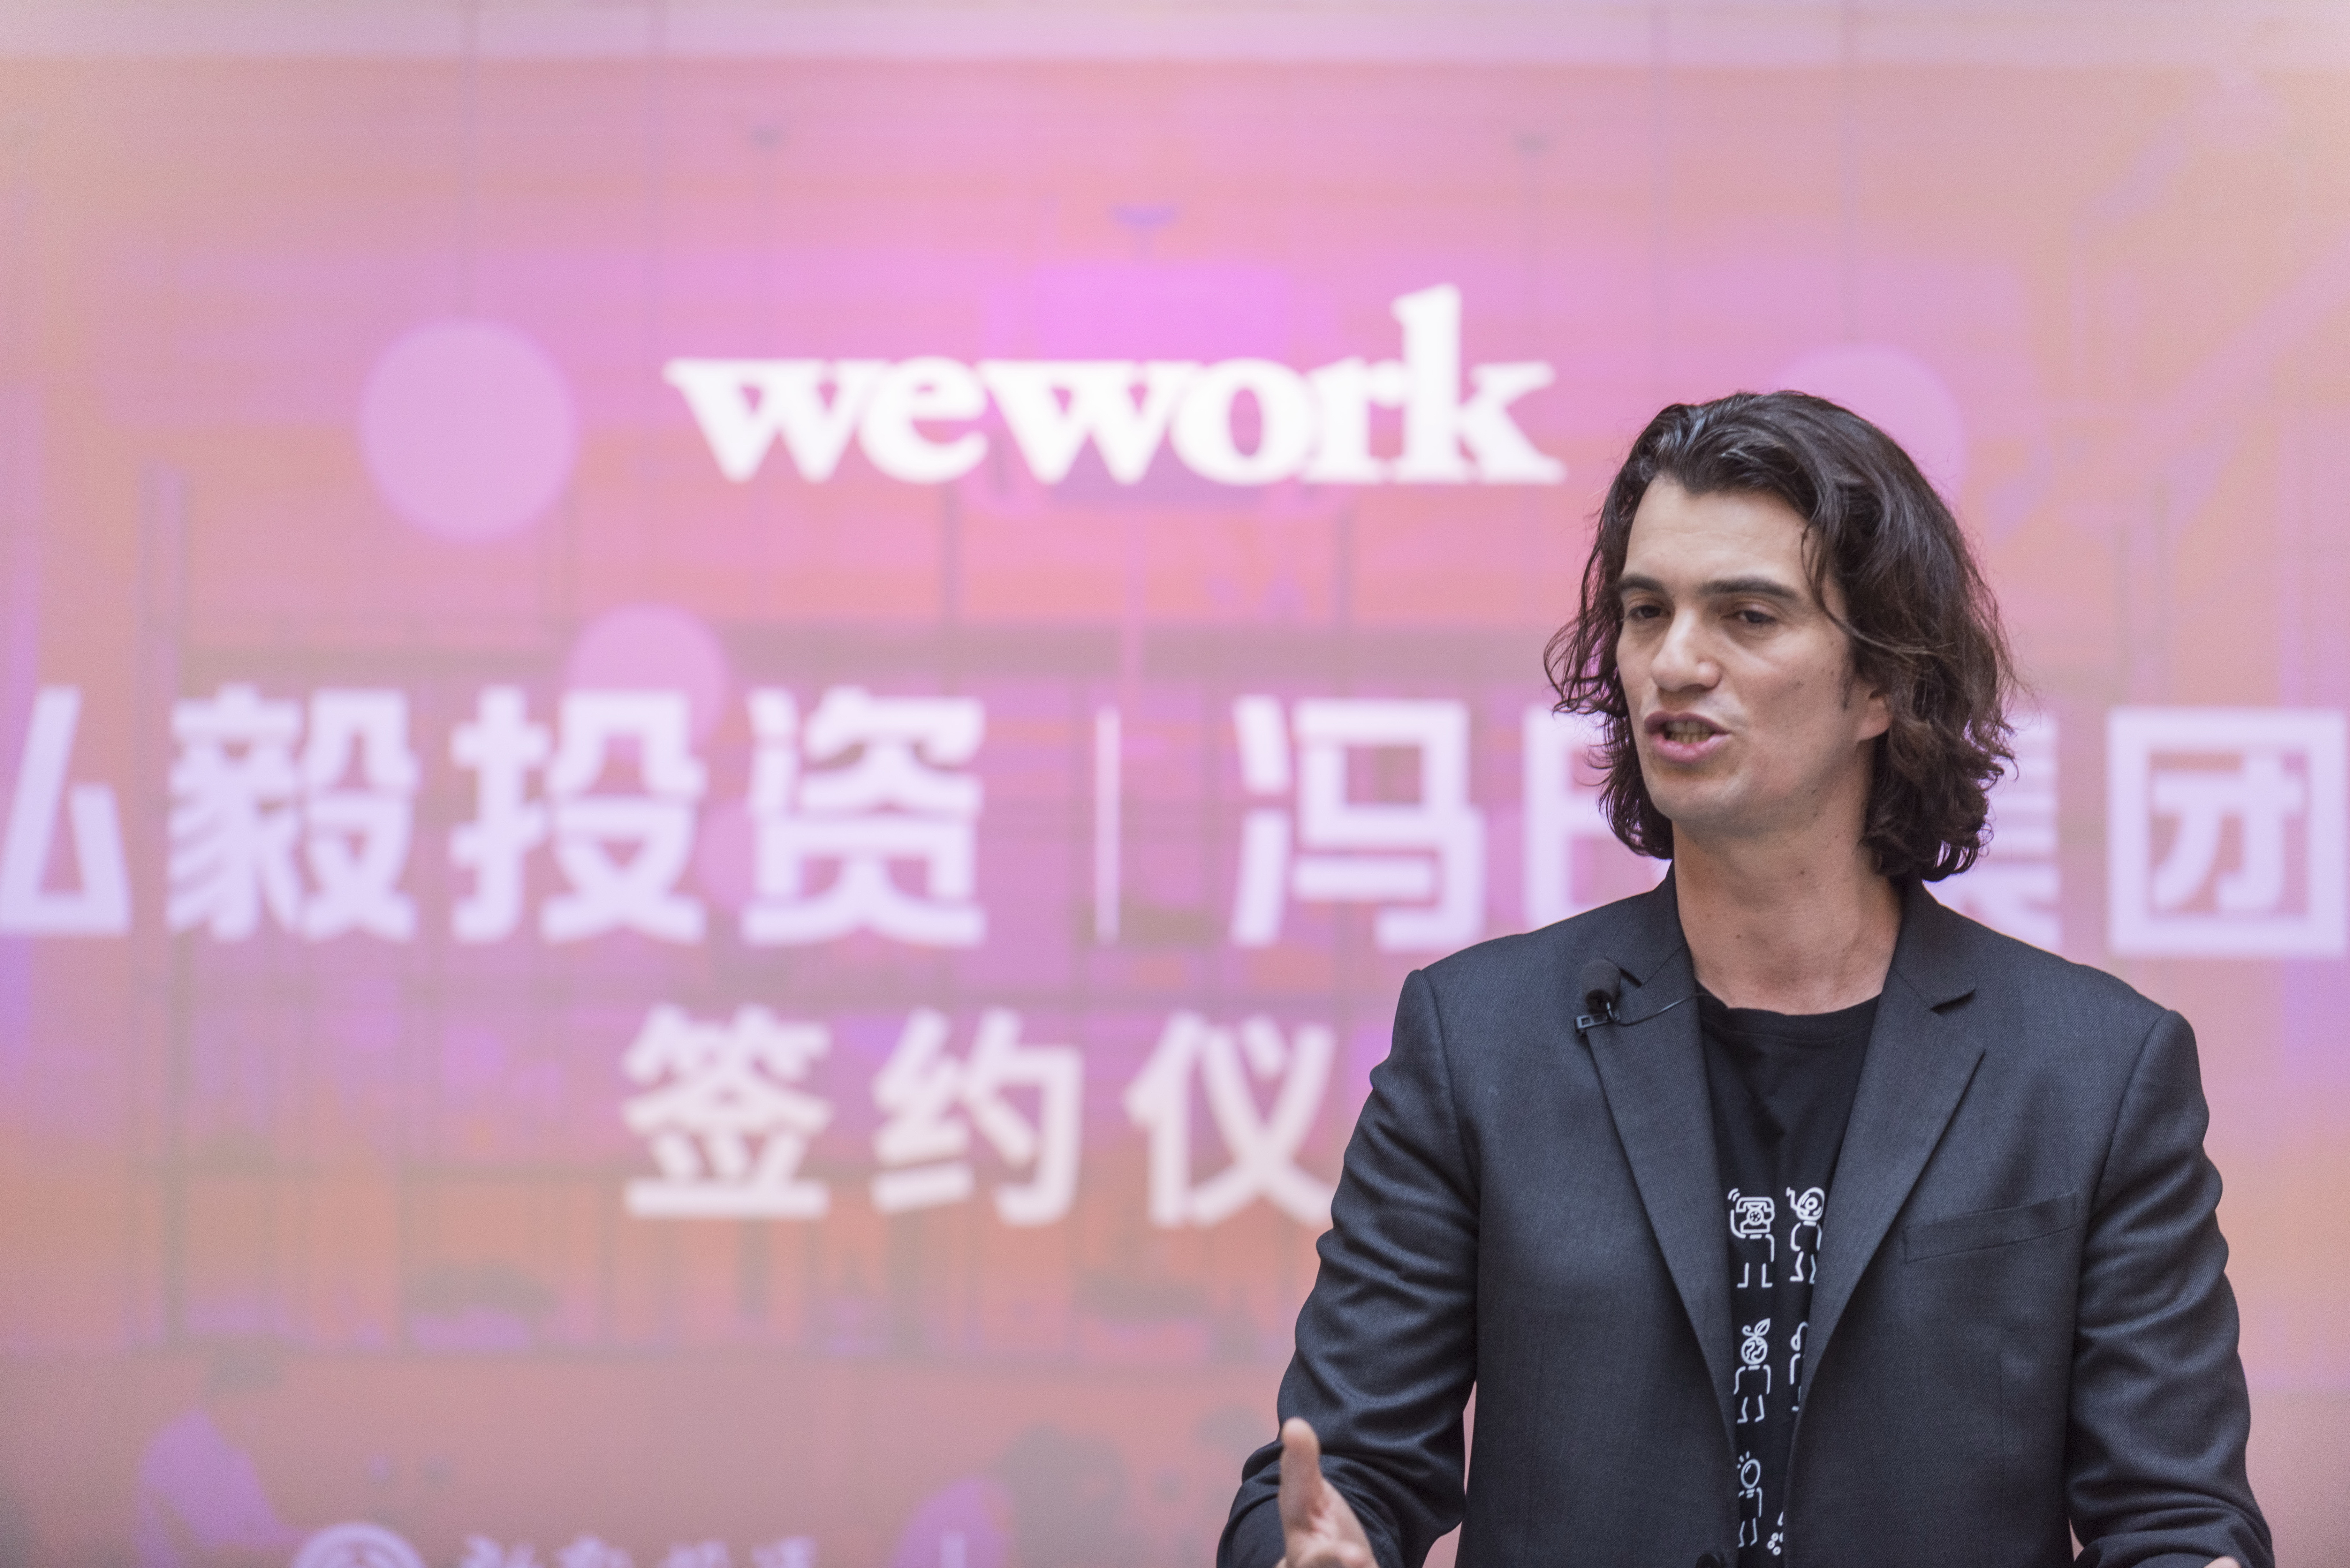 SHANGHAI, CHINA - APRIL 12:  Adam Neumann, co-founder and chief executive officer of WeWork, speaks during a signing ceremony at WeWork Weihai Road flagship on April 12, 2018 in Shanghai, China. World's leading co-working space company WeWork will acquire China-based rival naked Hub for 400 million U.S. dollars.